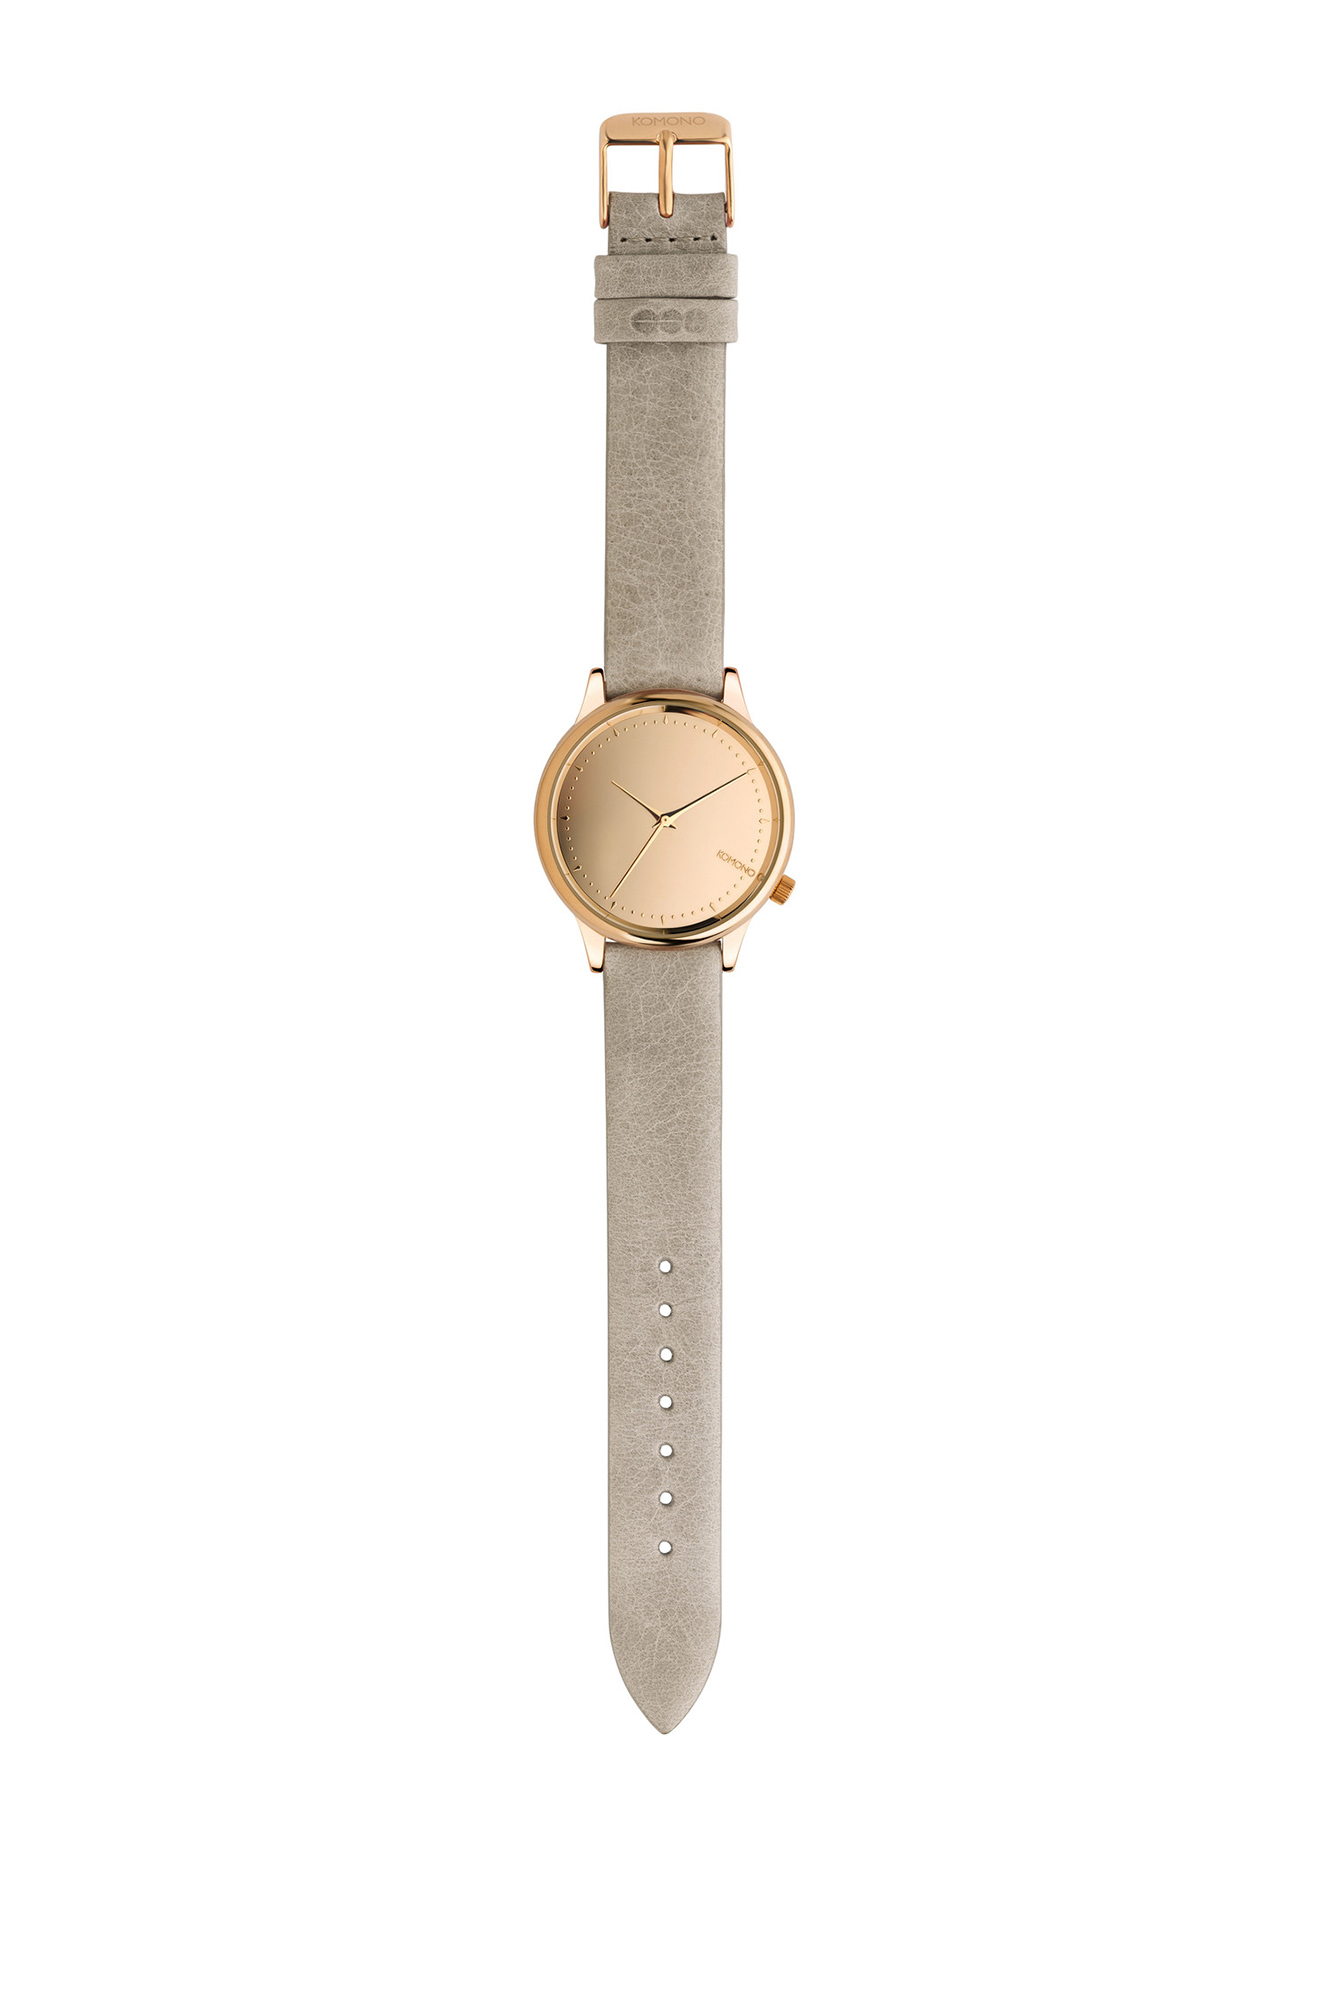 Komono - Orologio Estelle mirror gold grey